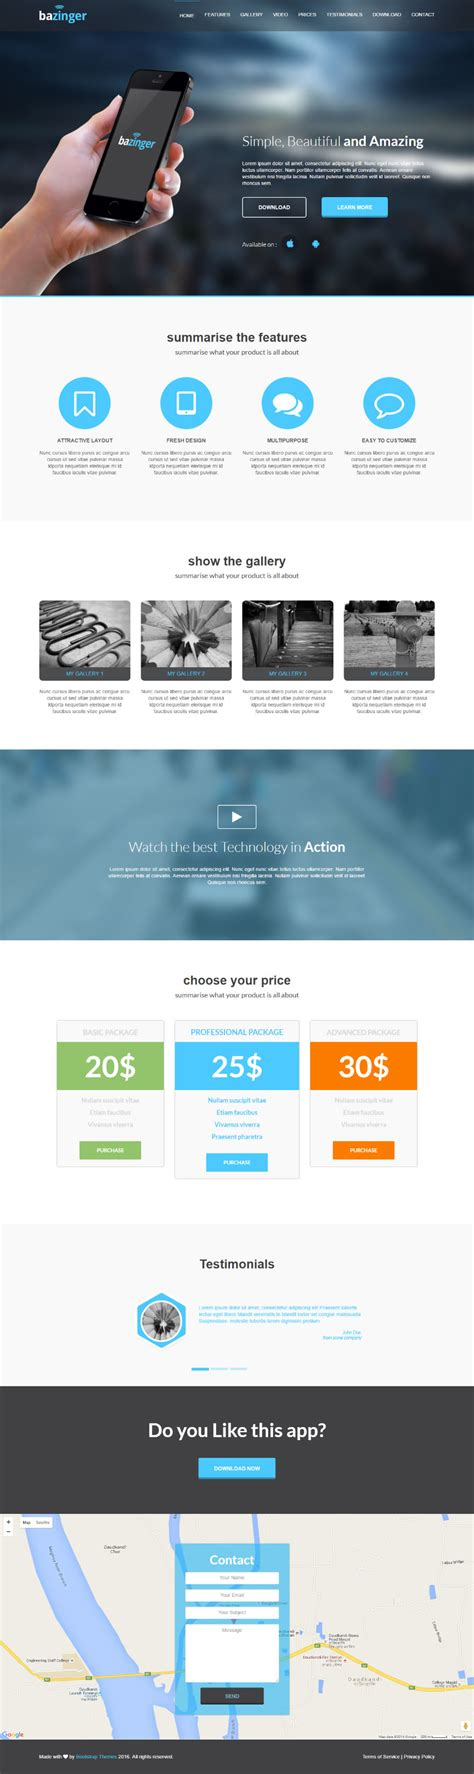 Github Bootstrapthemesco Bazinger Landing Page Template Amazing Is Fully Featured With One Github Website Template